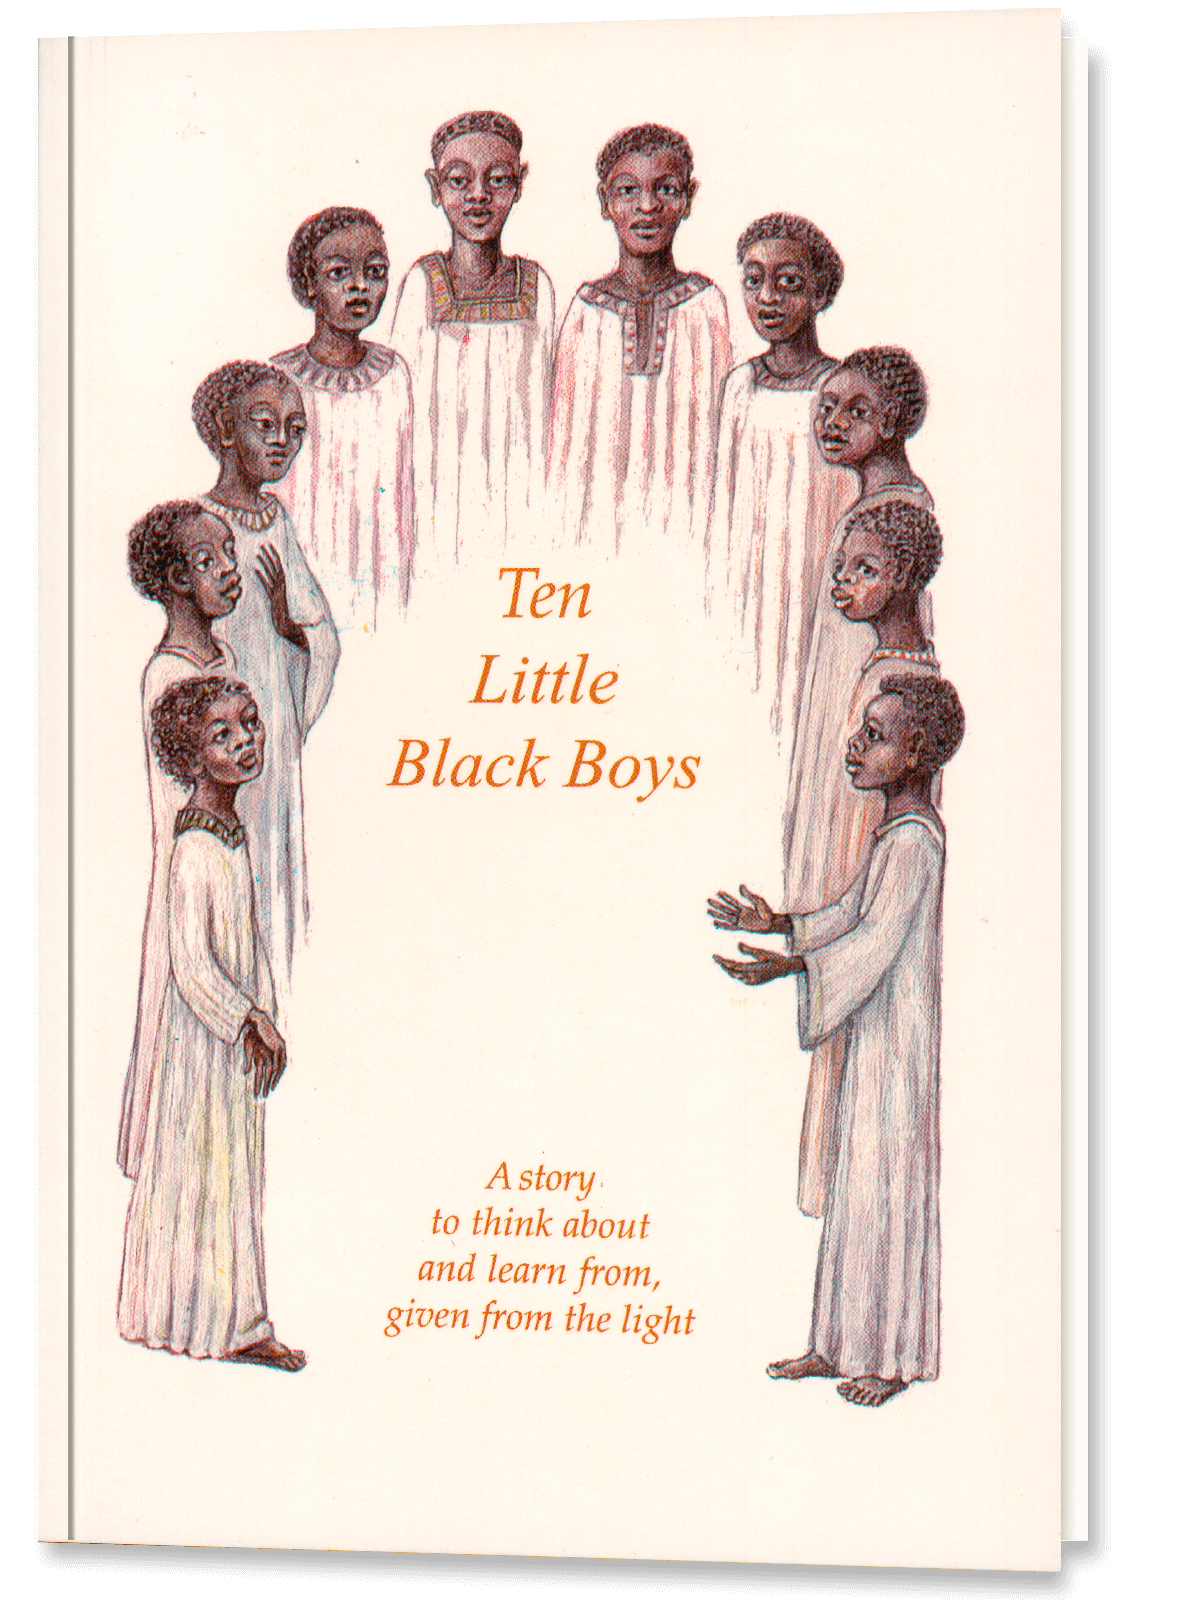 Ten Little Black Boys